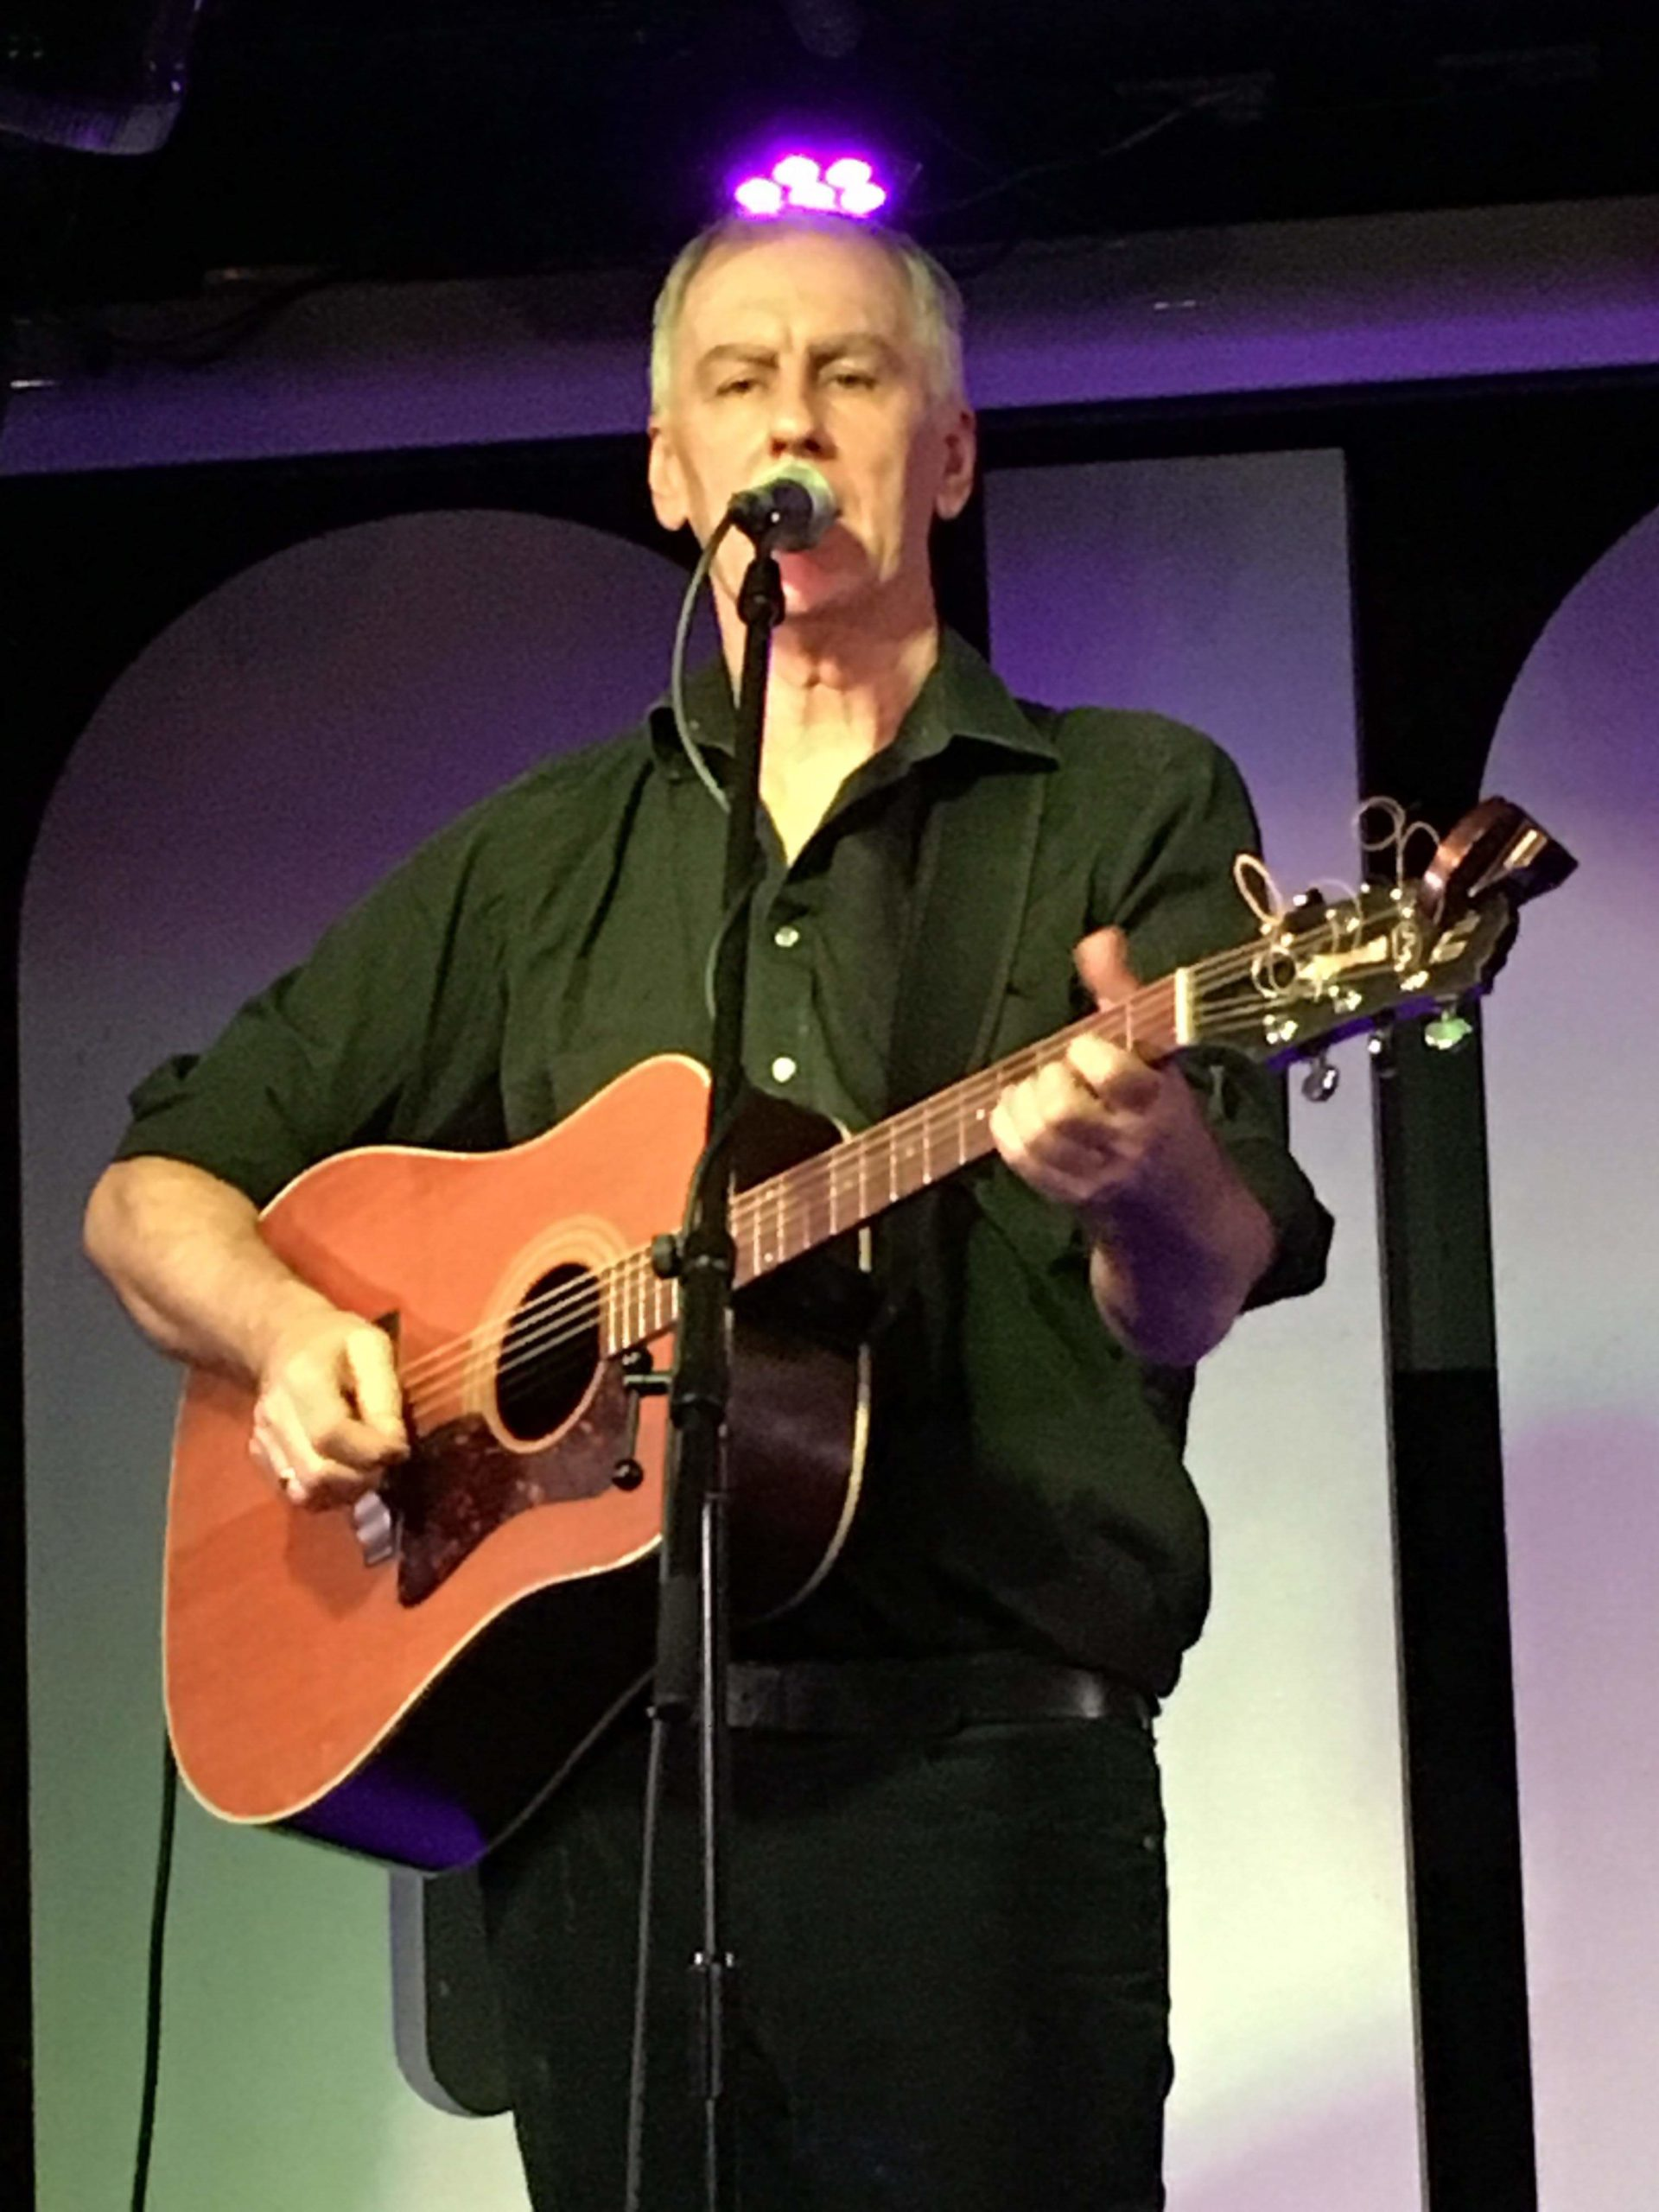 Robert Forster – Birmingham Glee Club, 26/11/2019